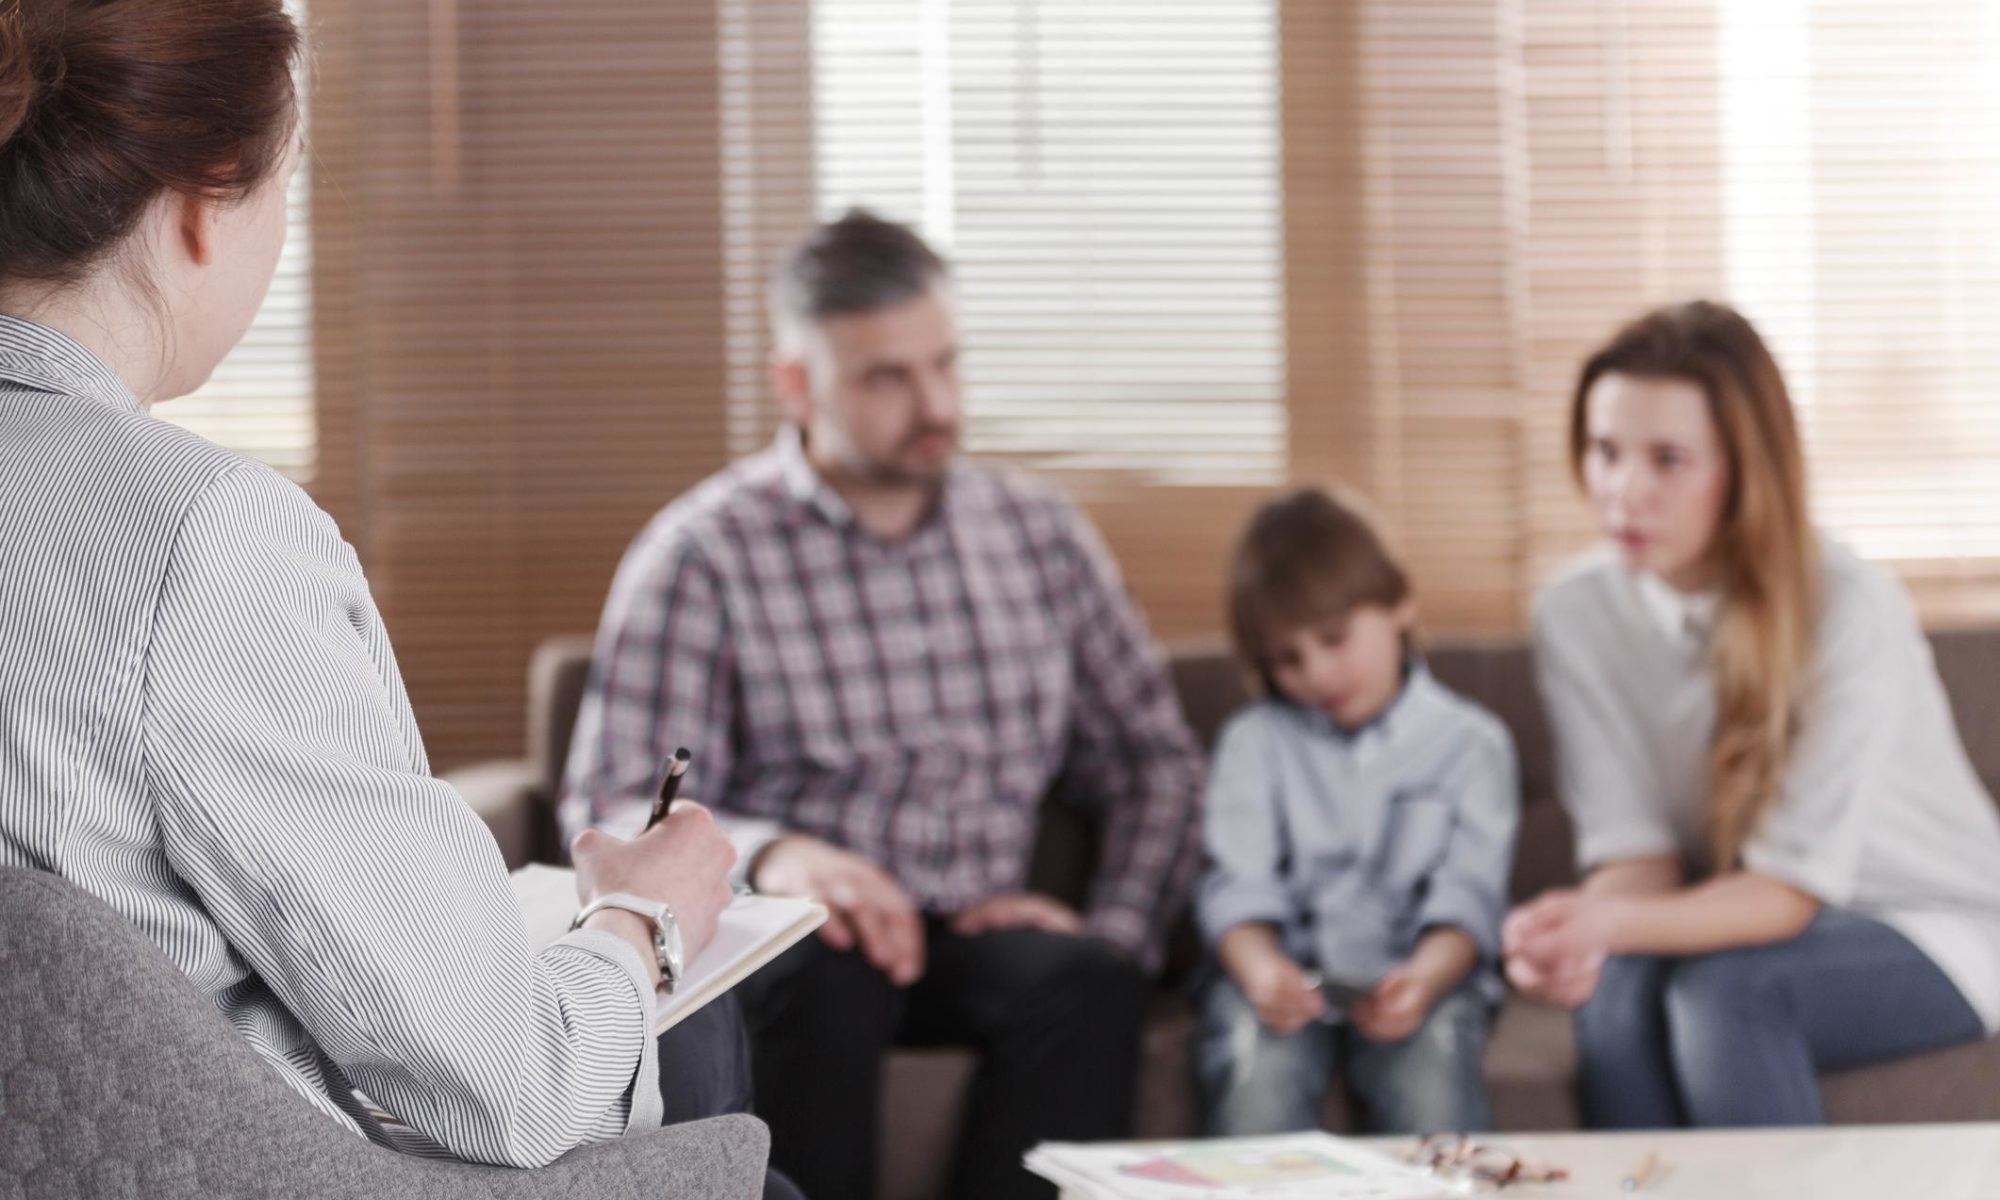 5 Tips for Preparing Your Children for Divorce